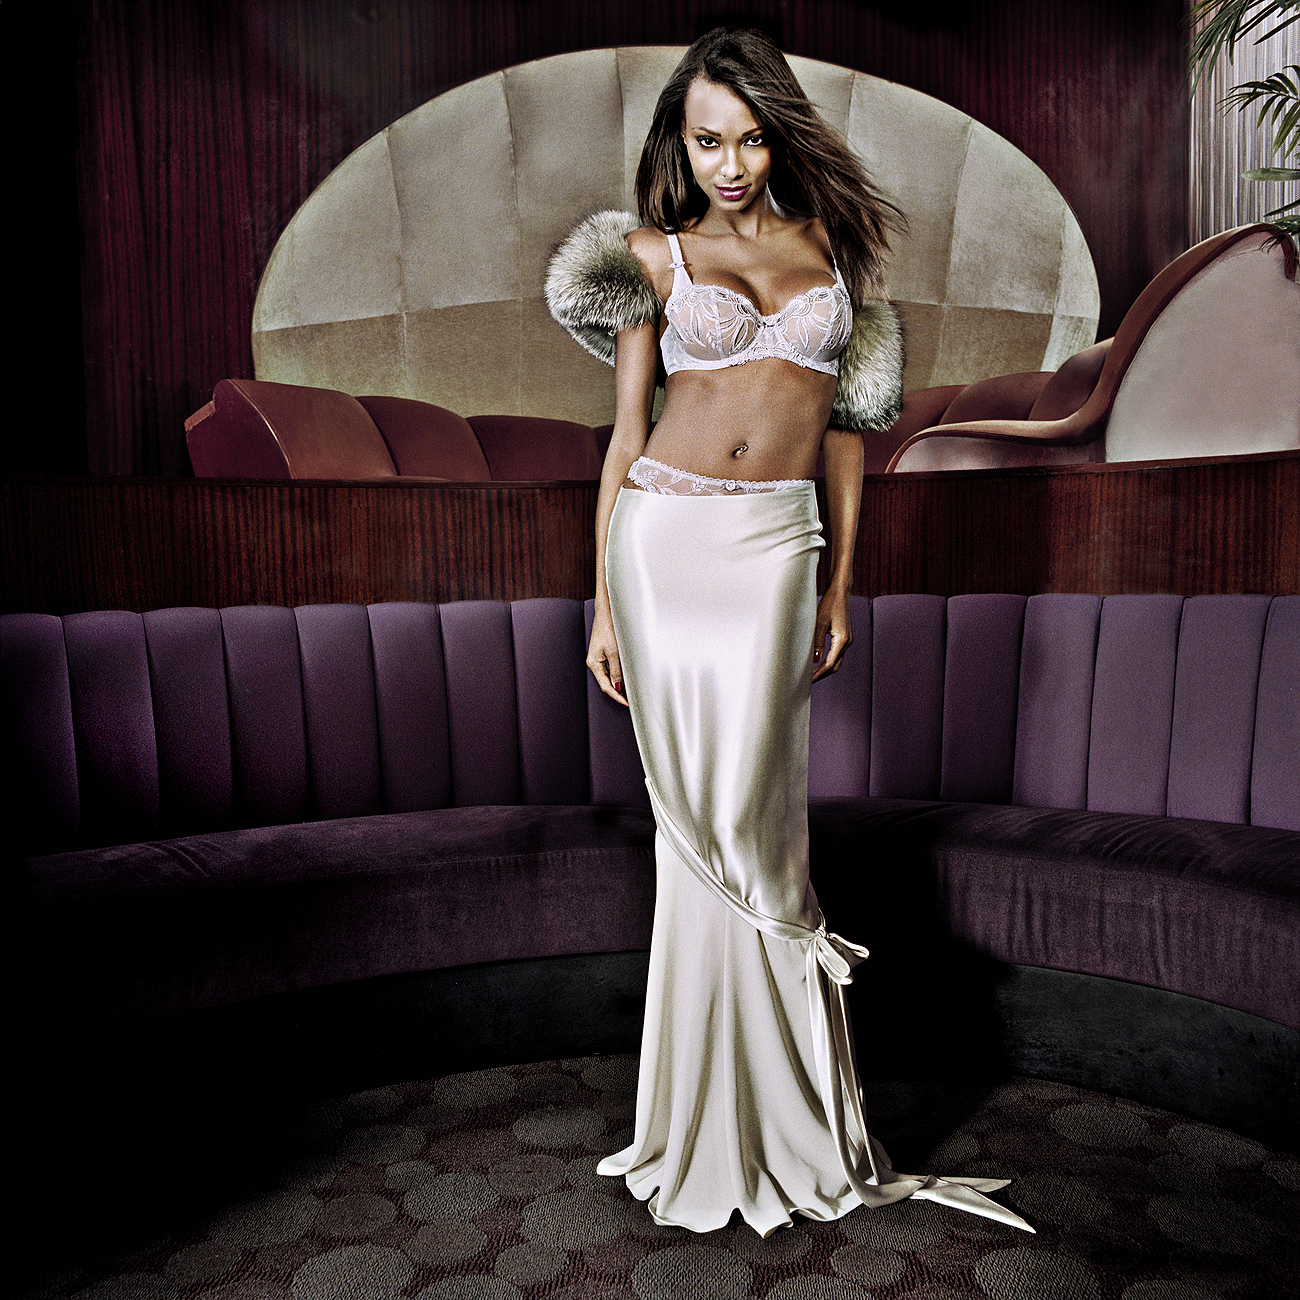 Tony_Ward_photography_neiman_marcus_picture_new_york_Penthouse_club_lingerie_picture copy